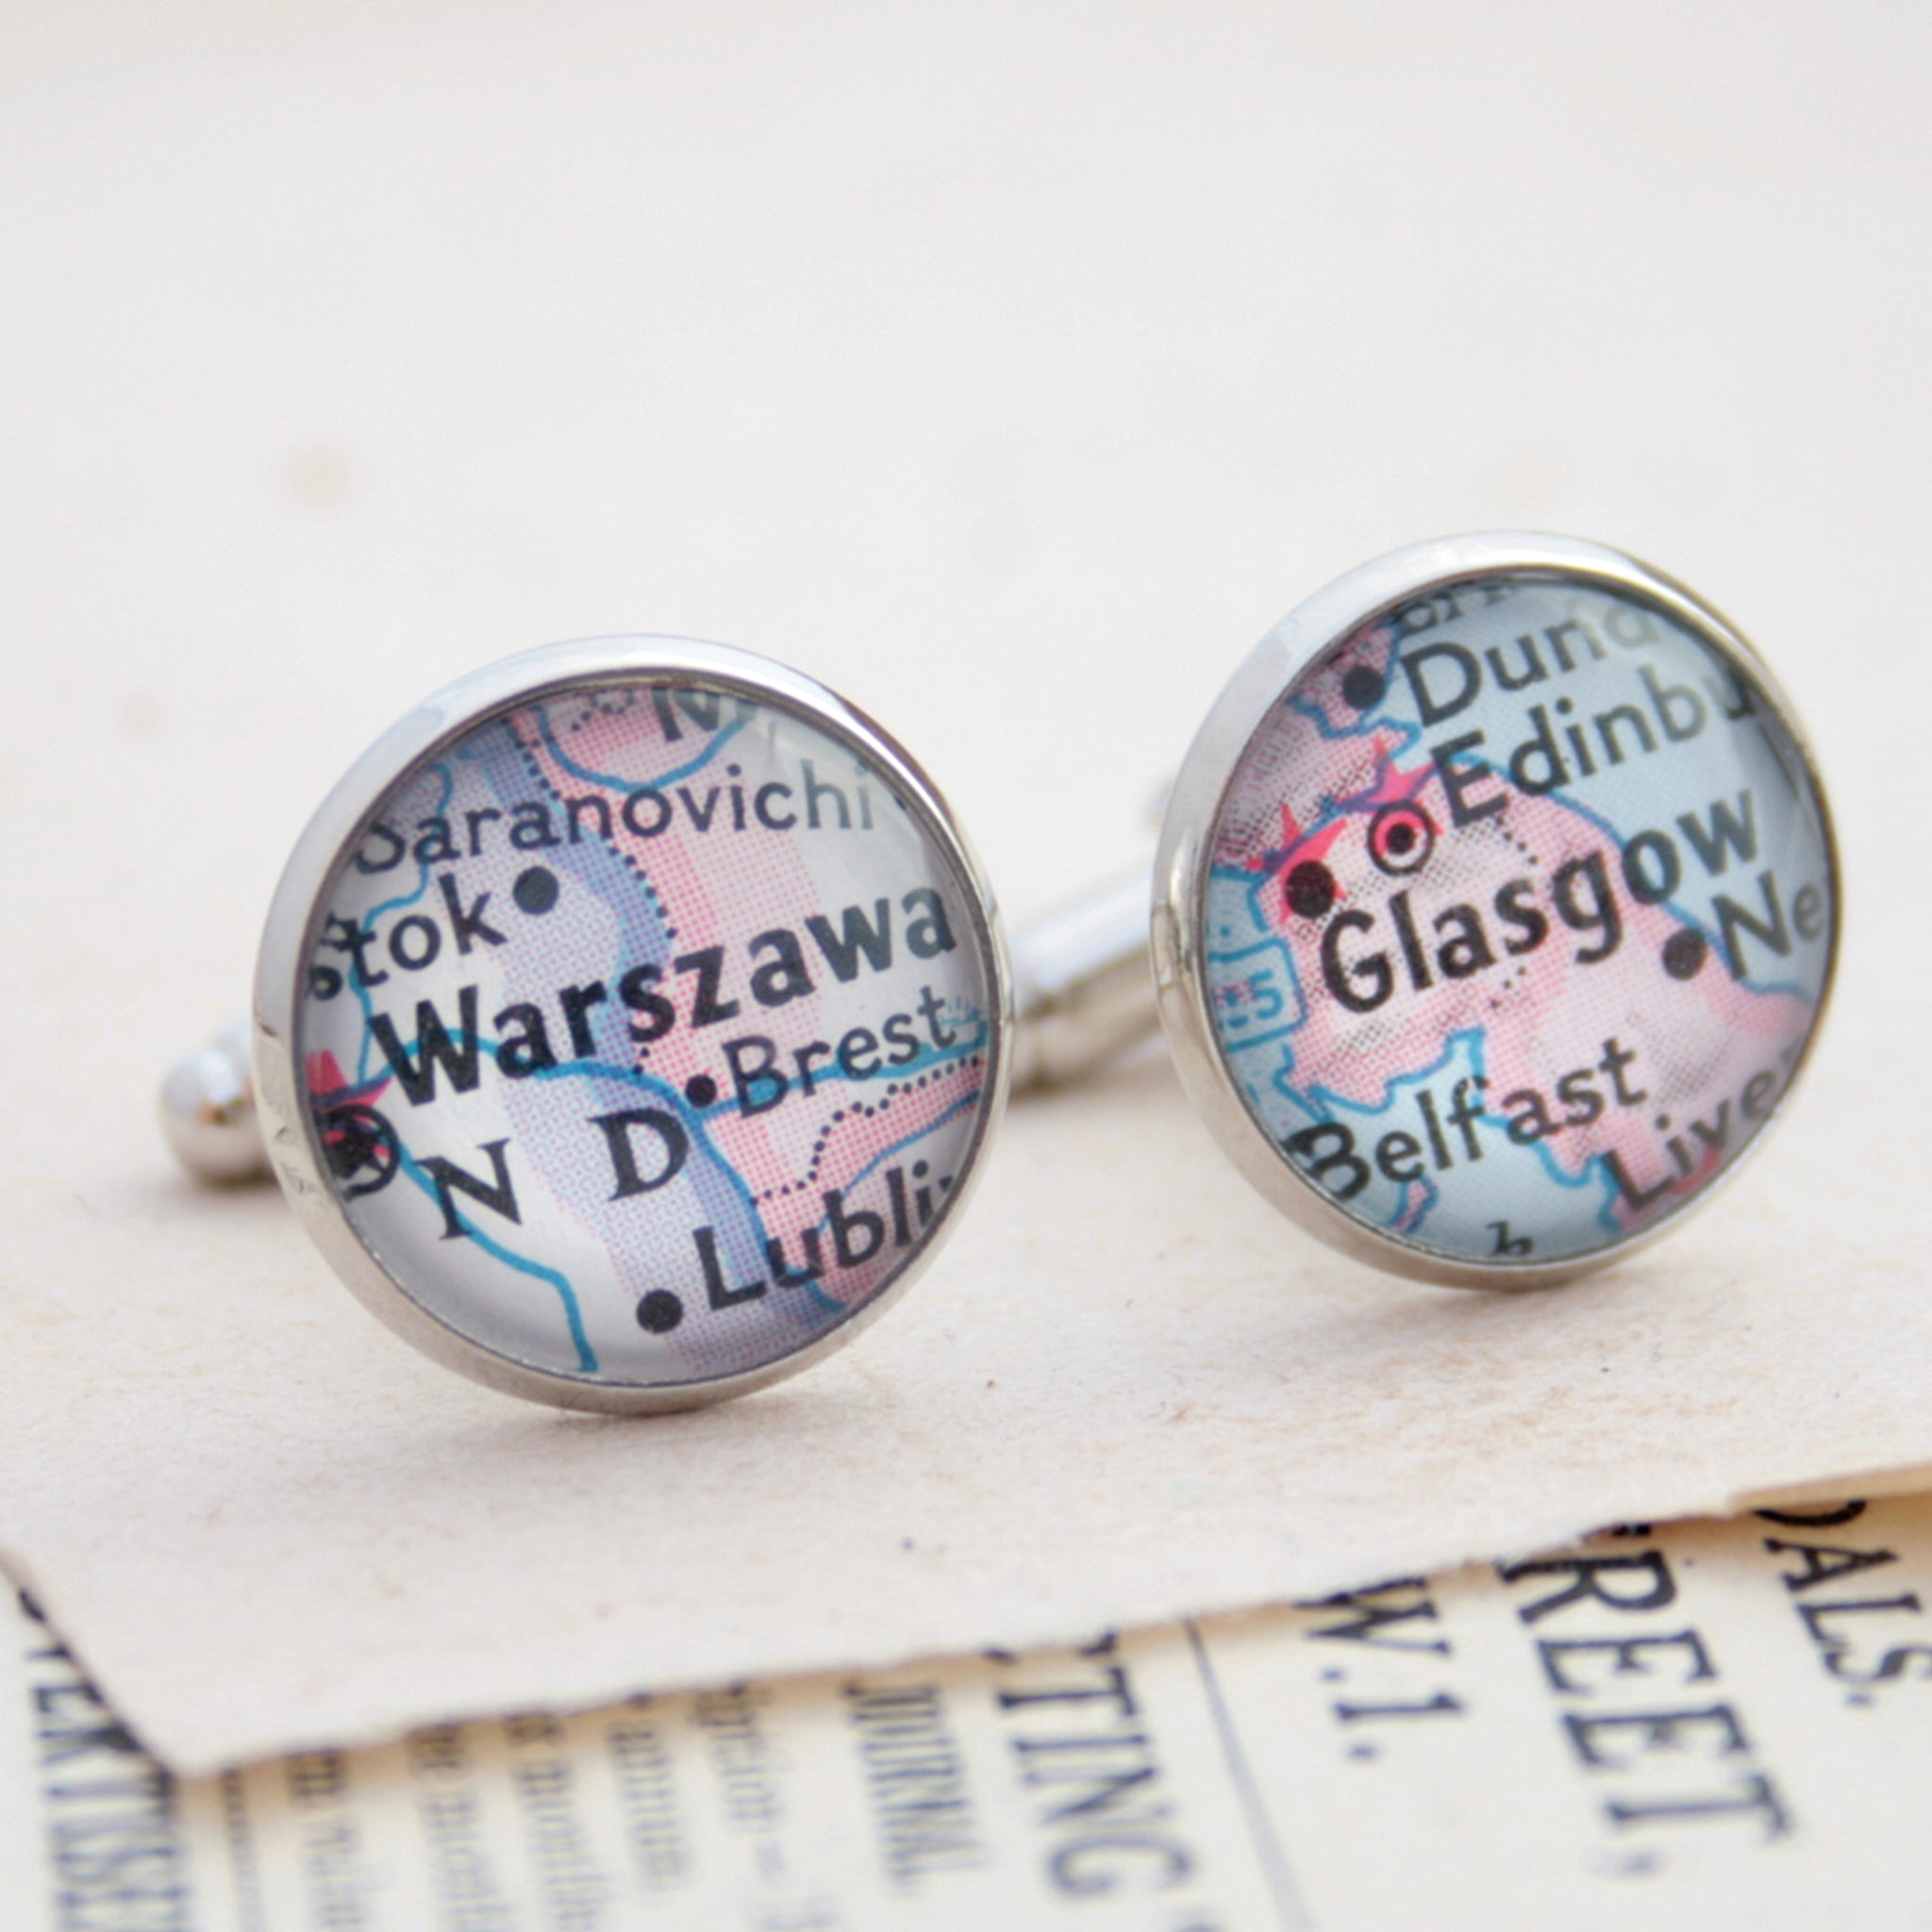 Personalised map cufflinks in silver tone featuring maps of Warszawa and Glasgow